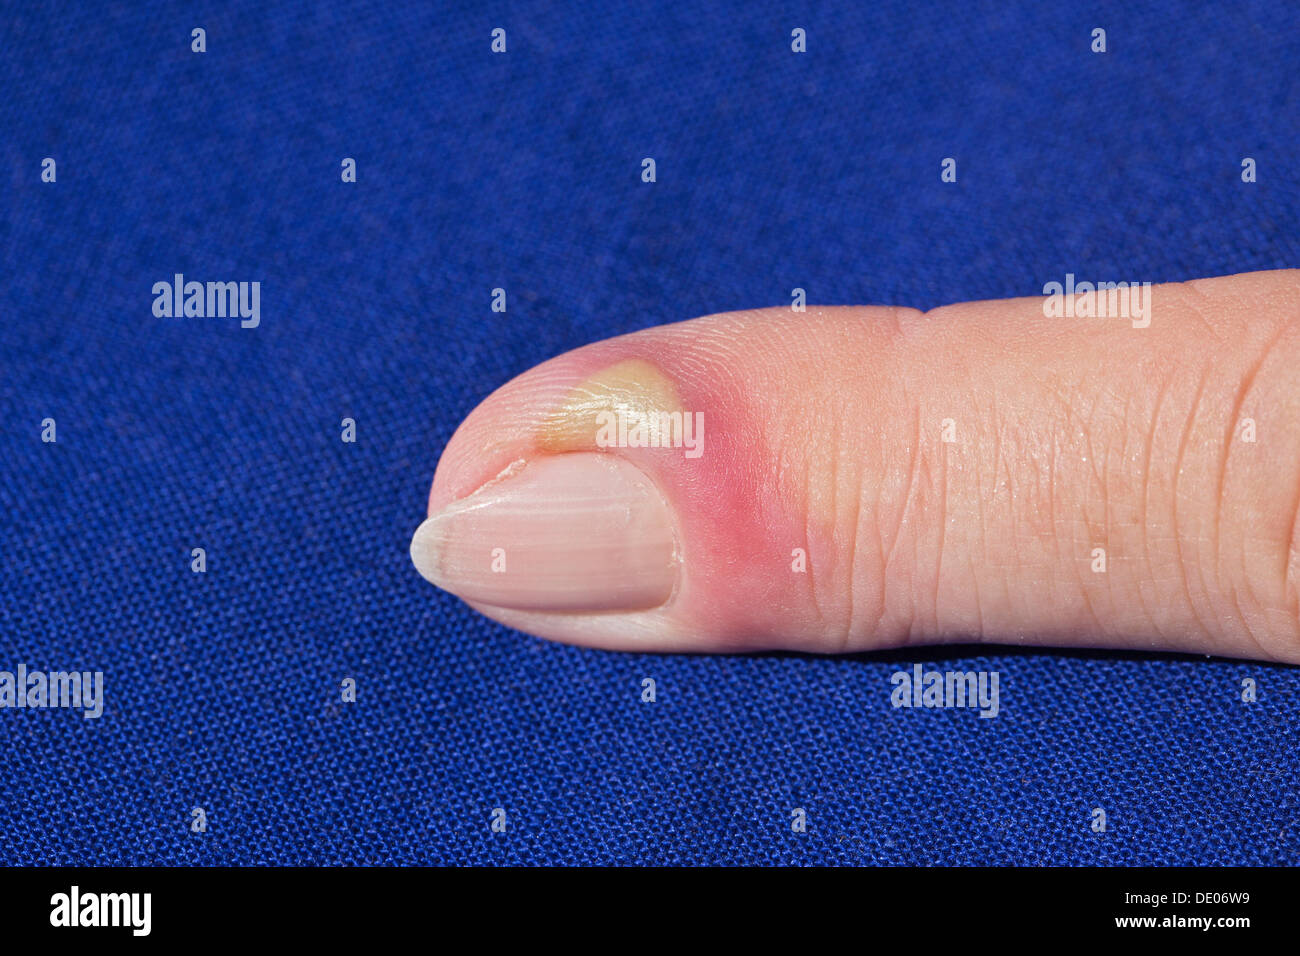 Bacterial infection, inflammation, index finger, pus, abscess Stock ...